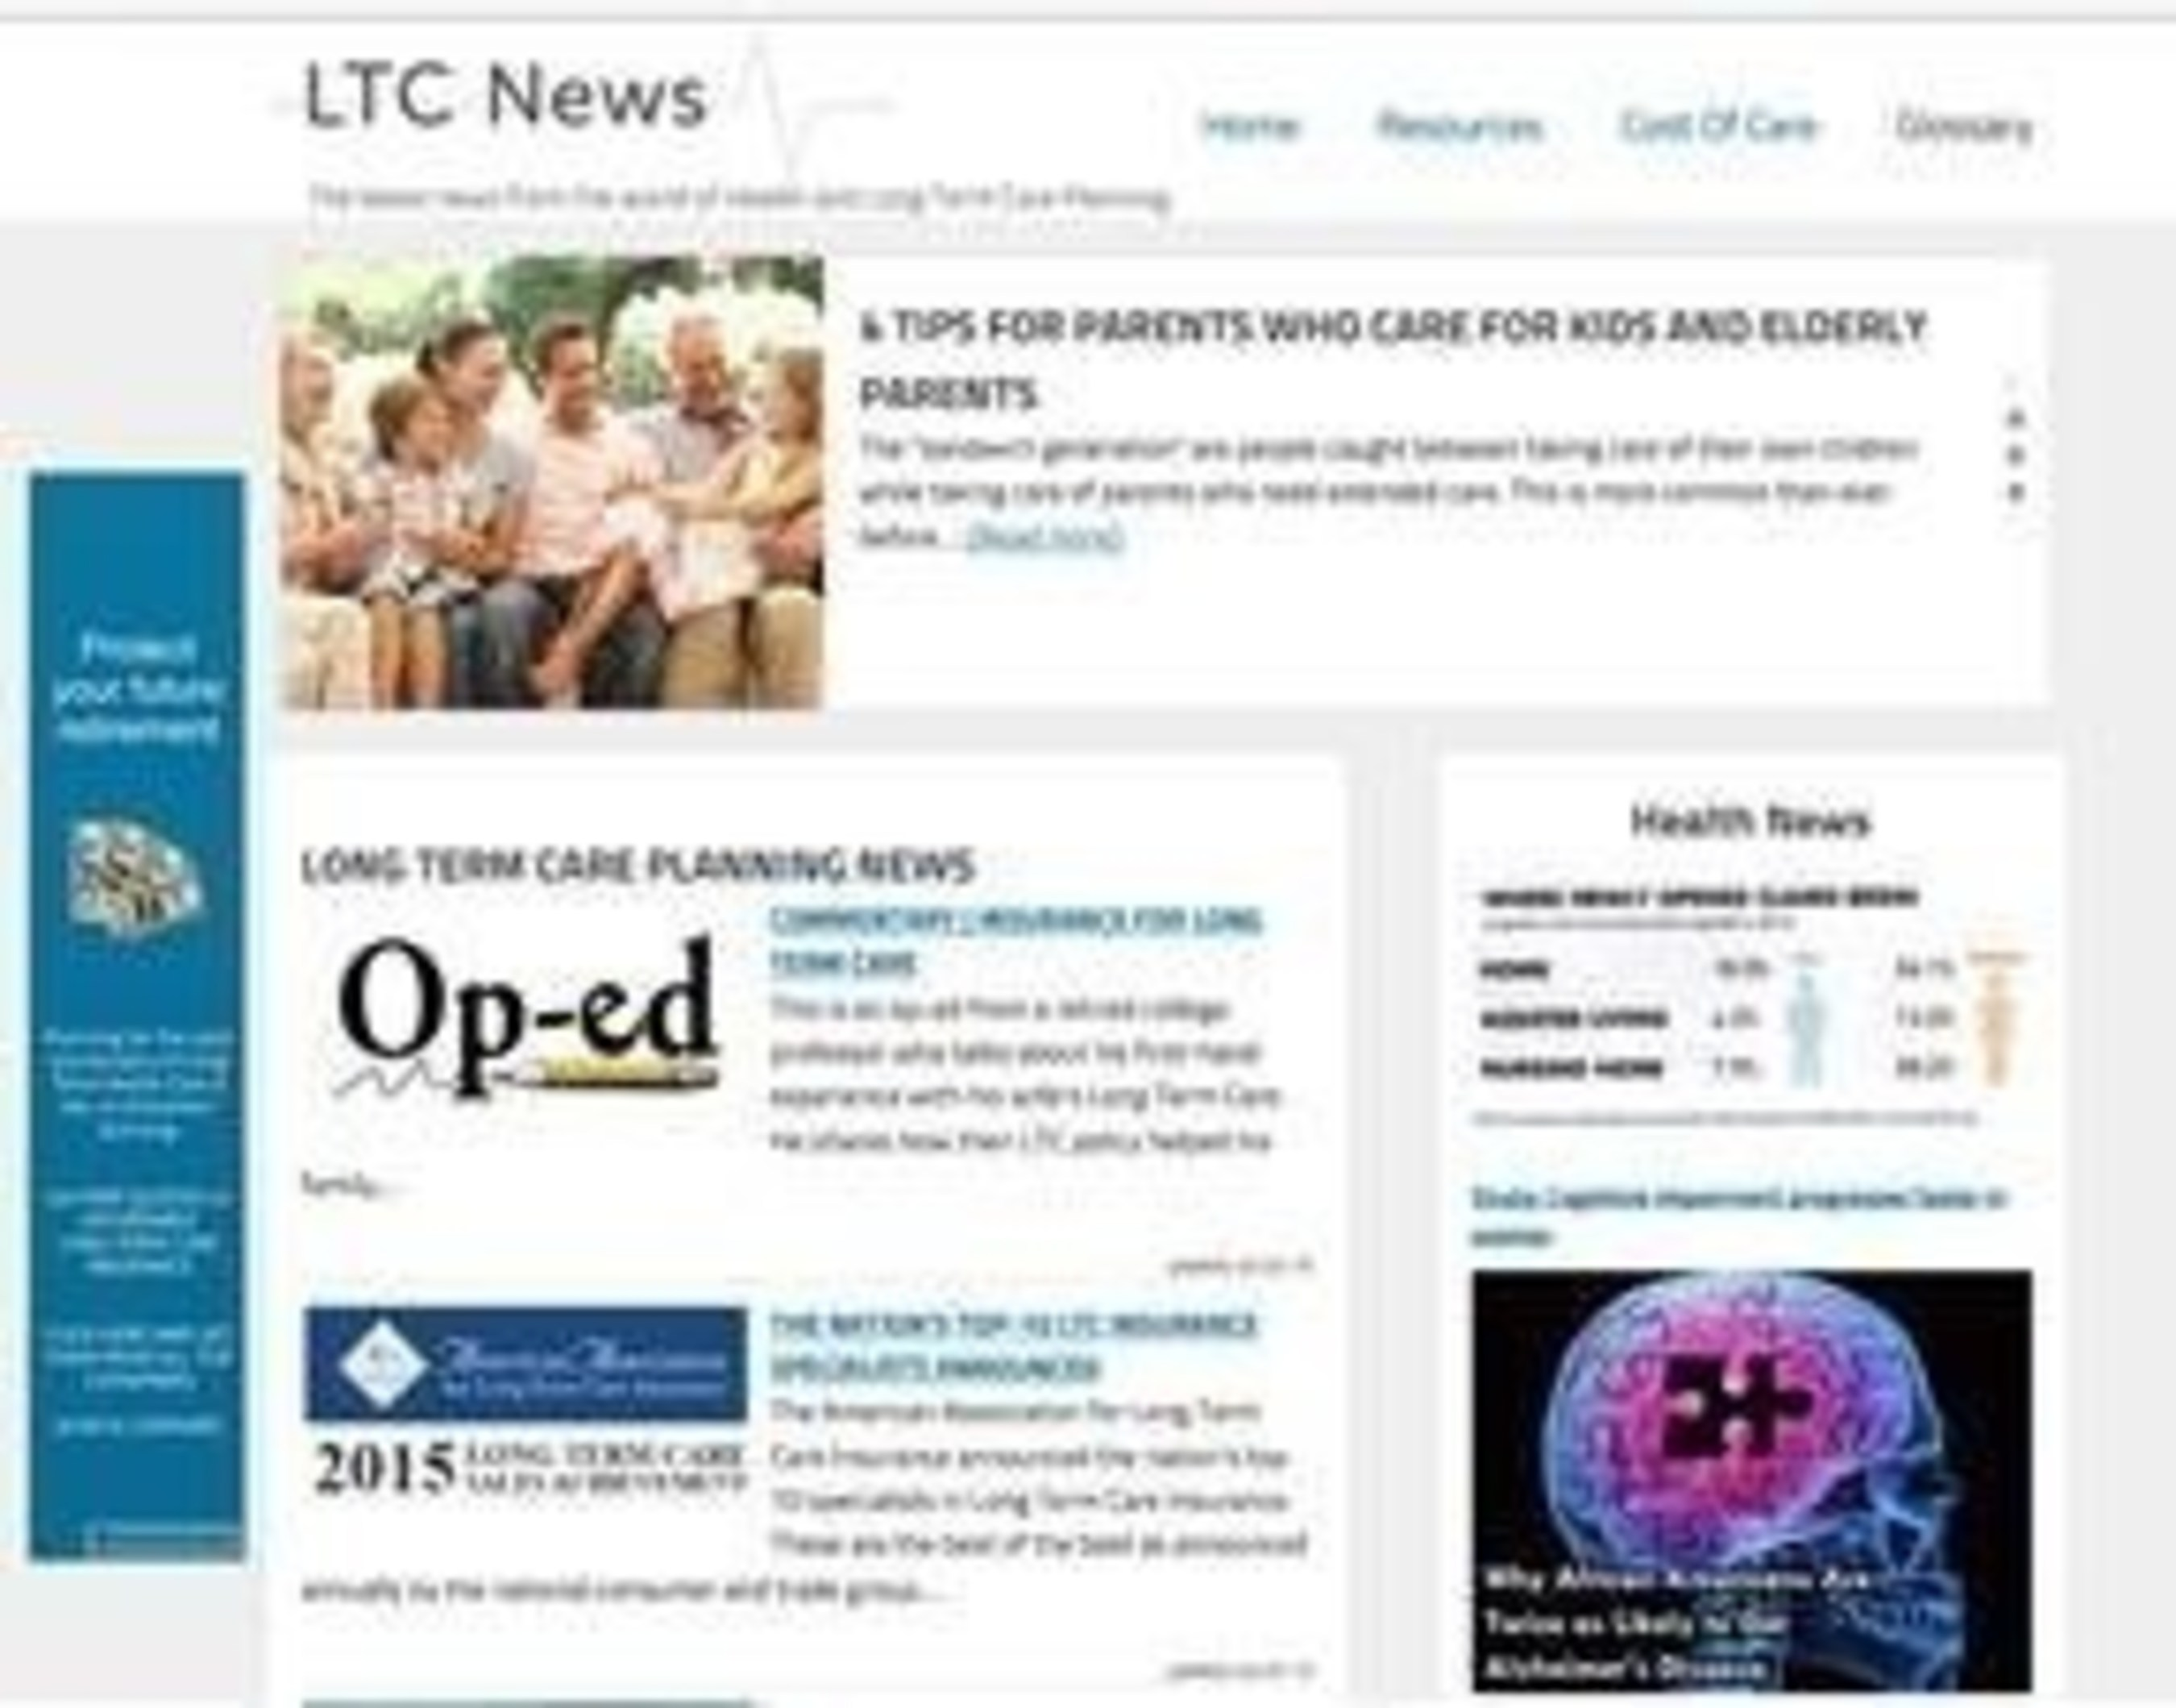 New Website Provides News on Long Term Care Planning and Health Care